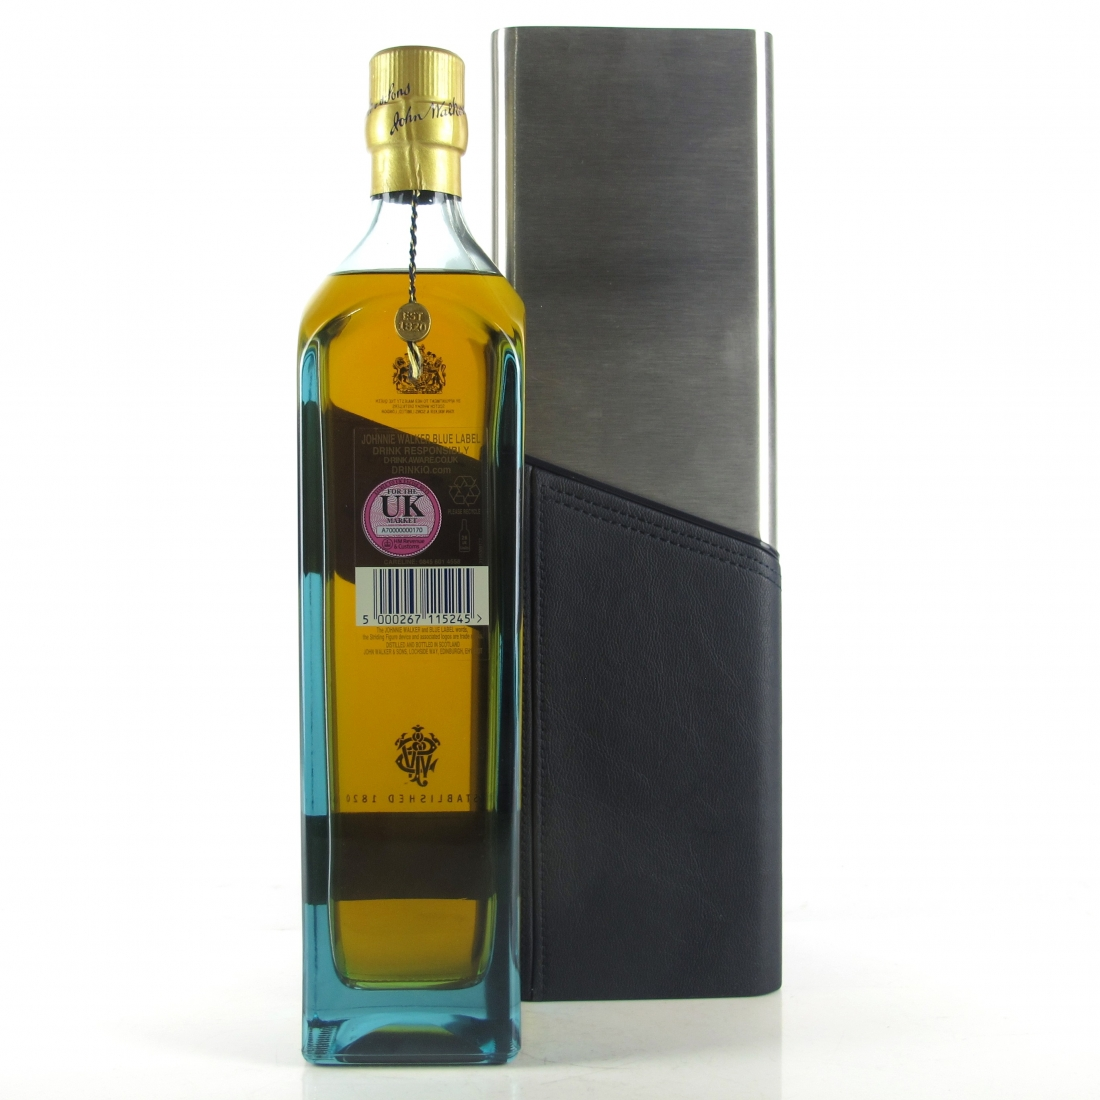 Johnnie Walker Blue Label Porsche Design Chiller